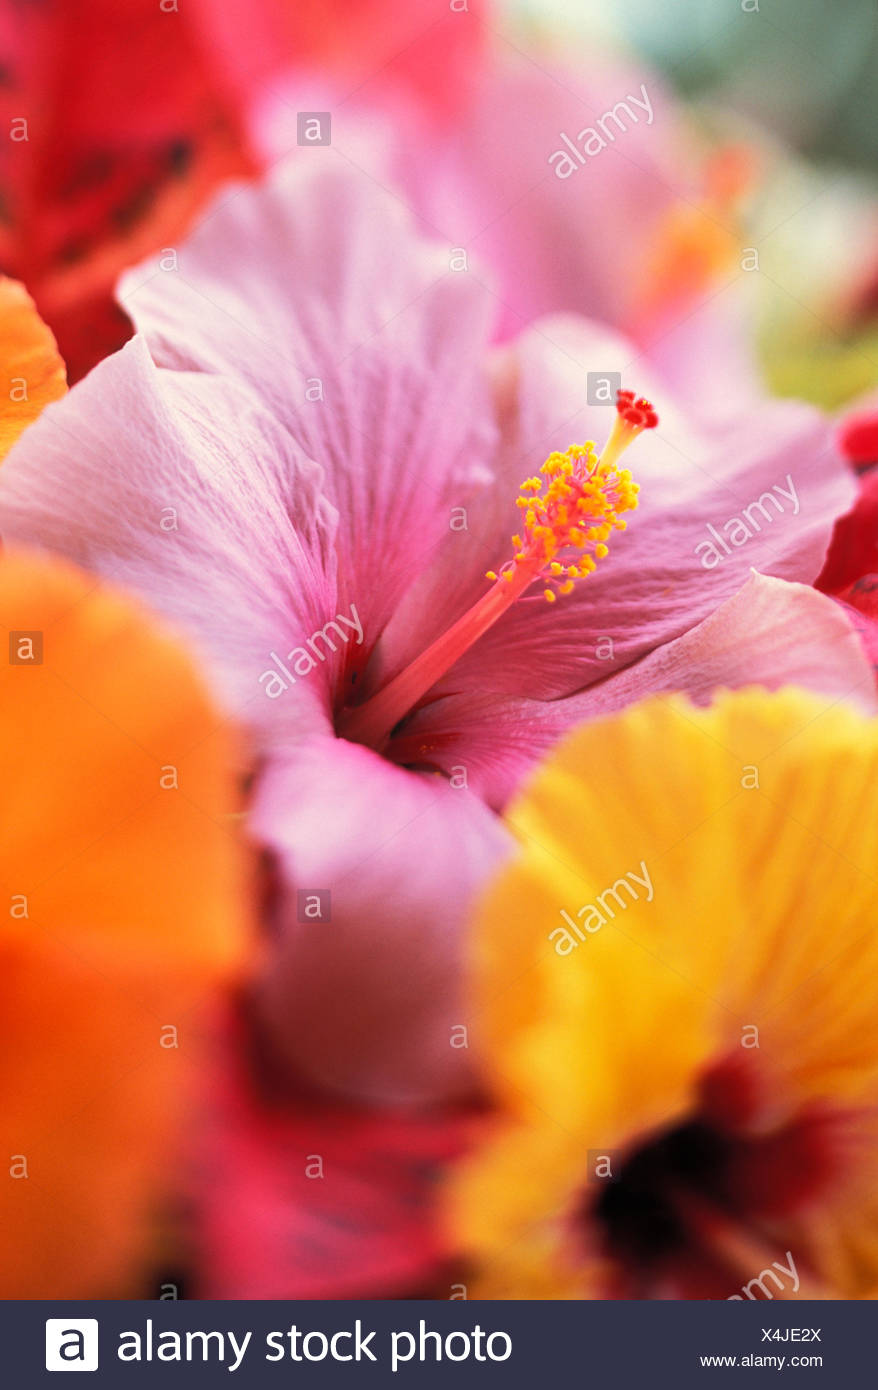 Hibiscus Flower Arrangement With Soft Focus Close Up Detail Subtle